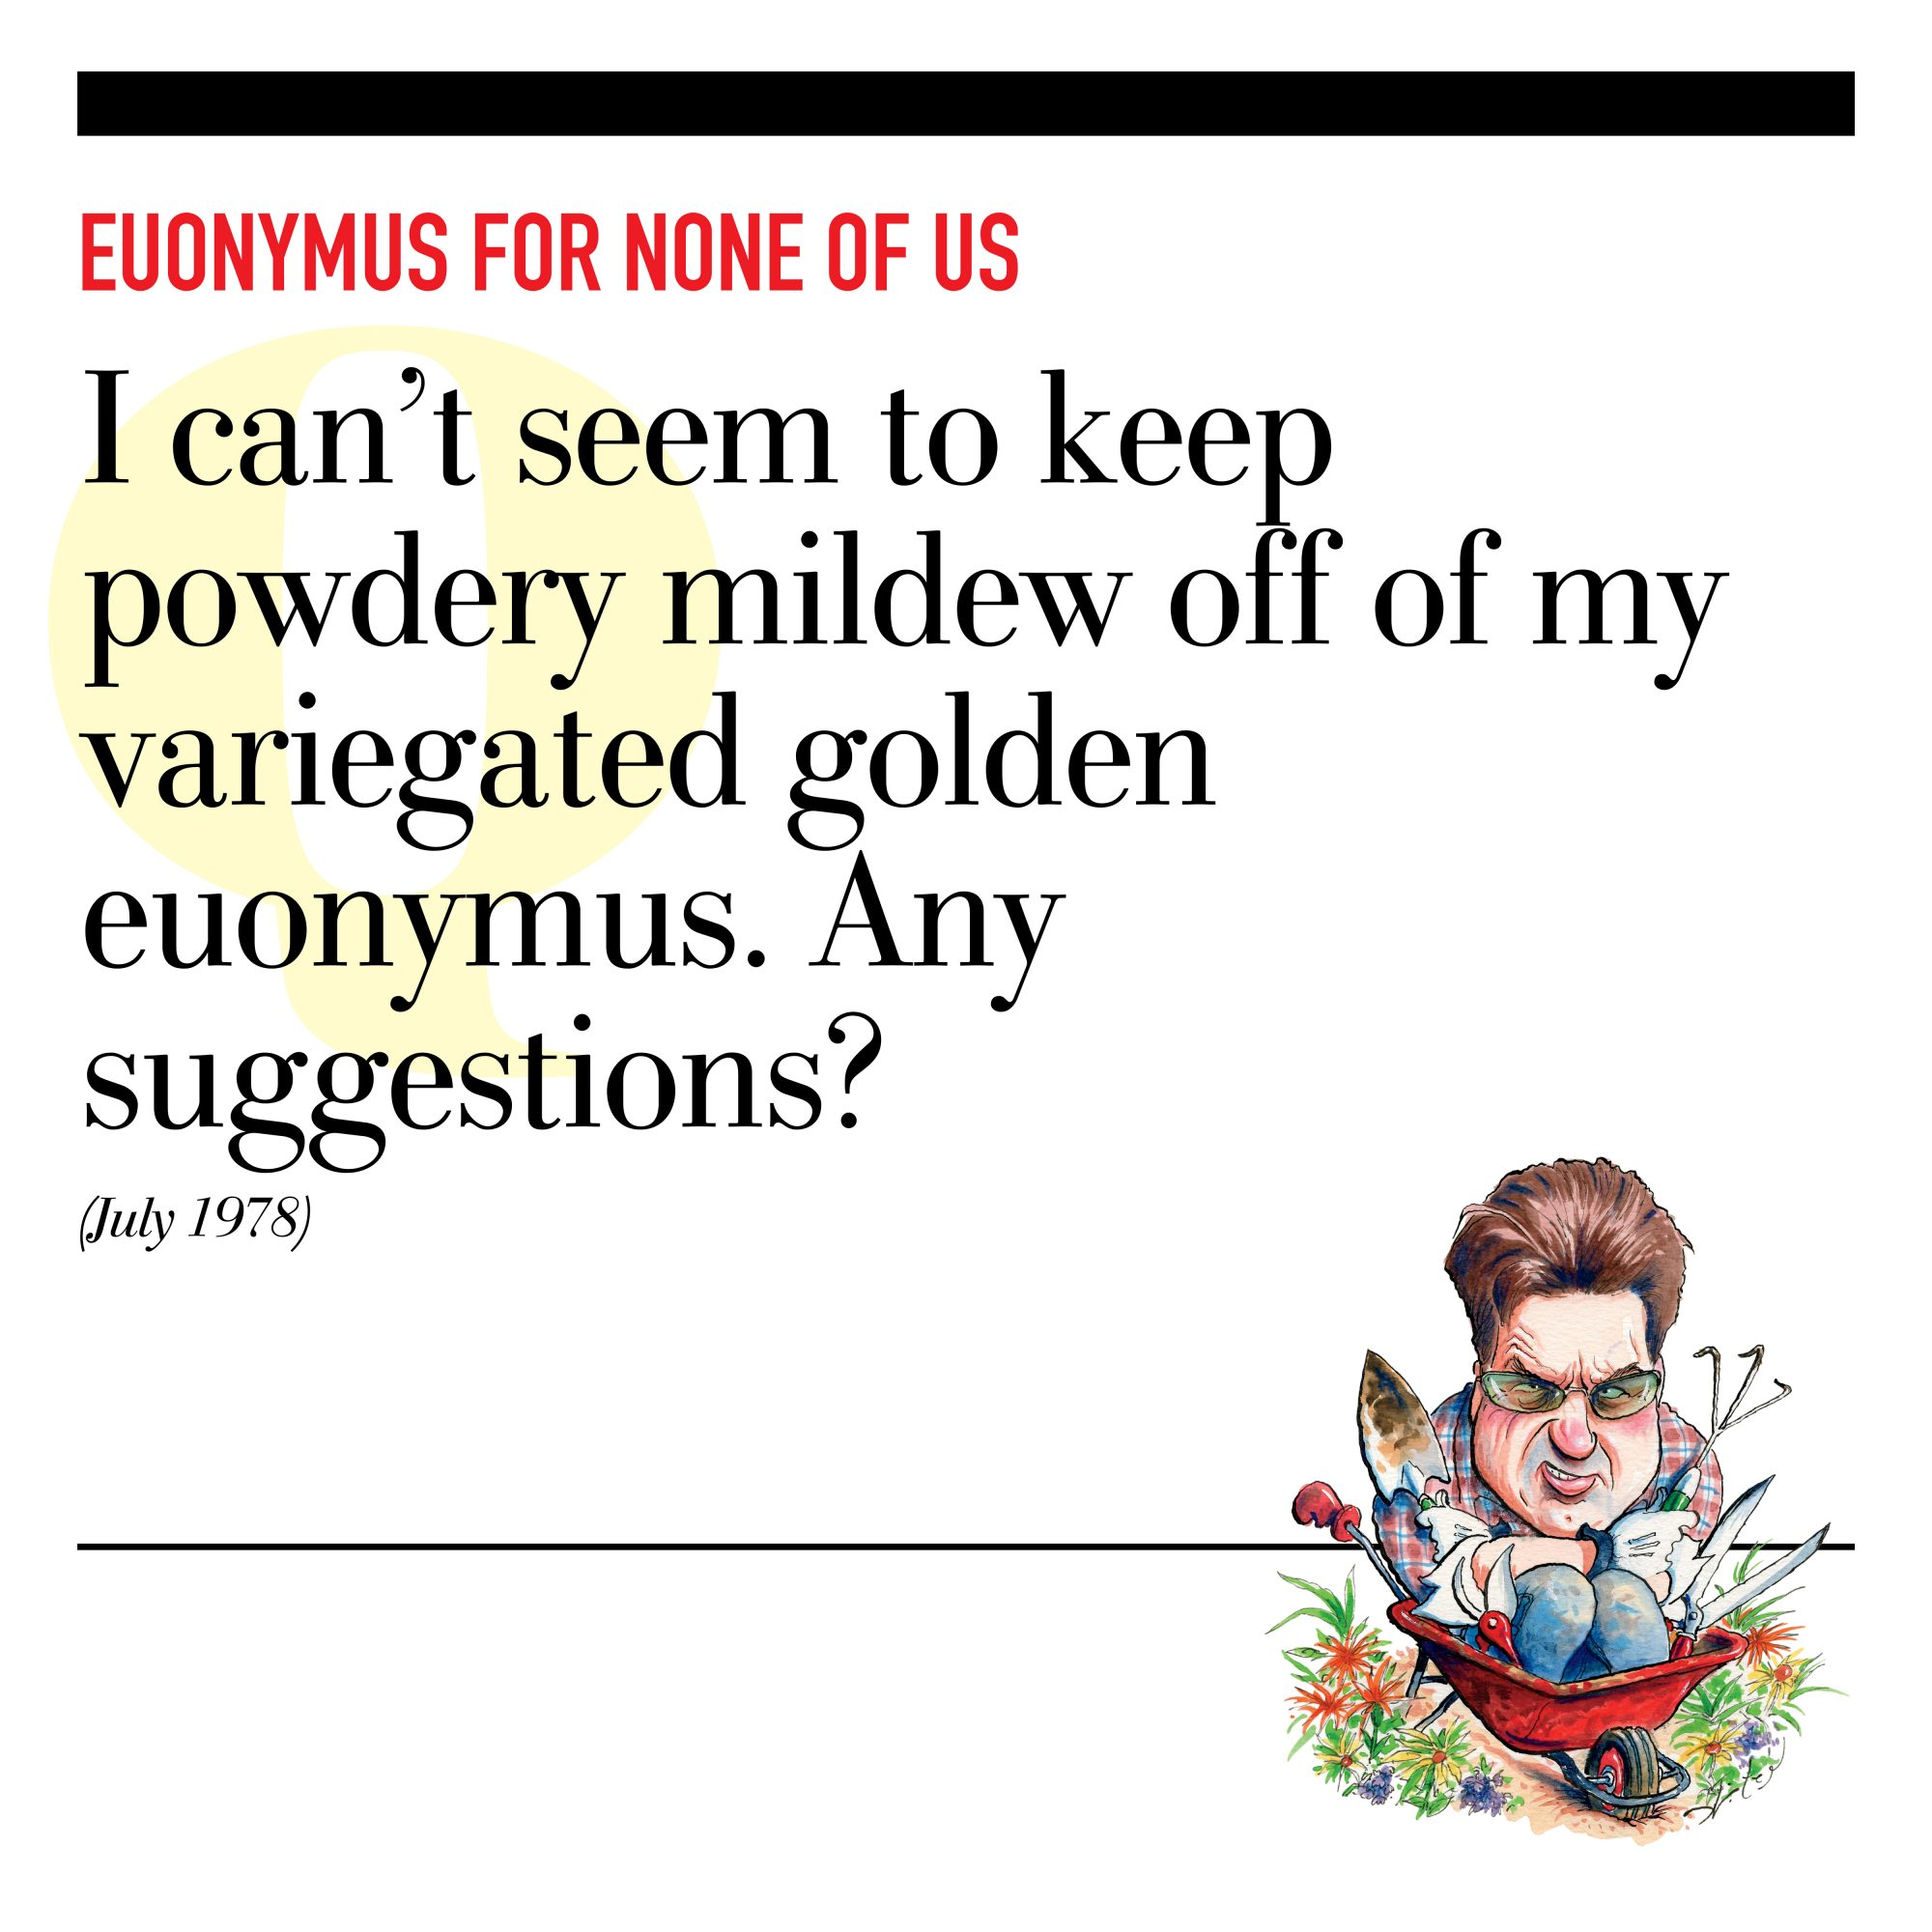 Euonymus for None of Us